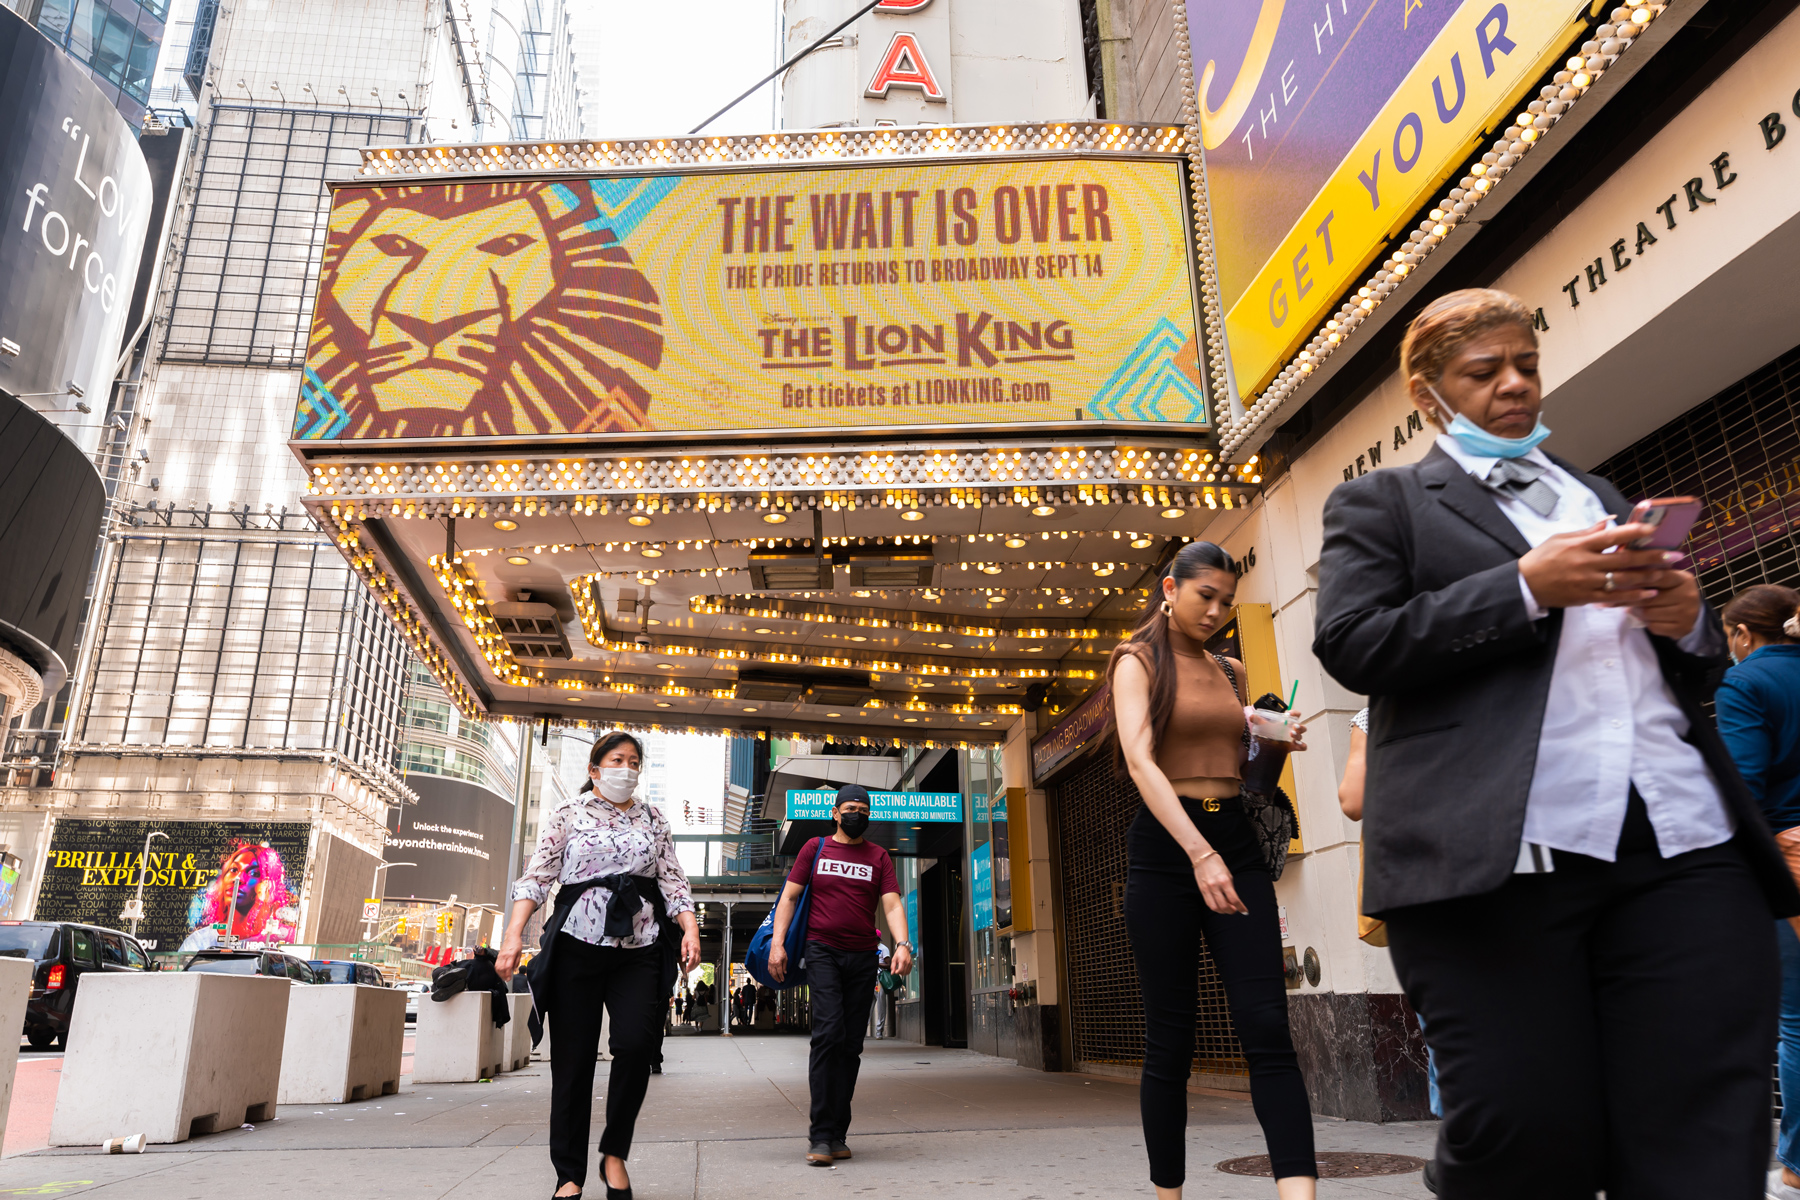 people walk by a billboard for The Lion King at the New Amsterdam Theatre in Times Square